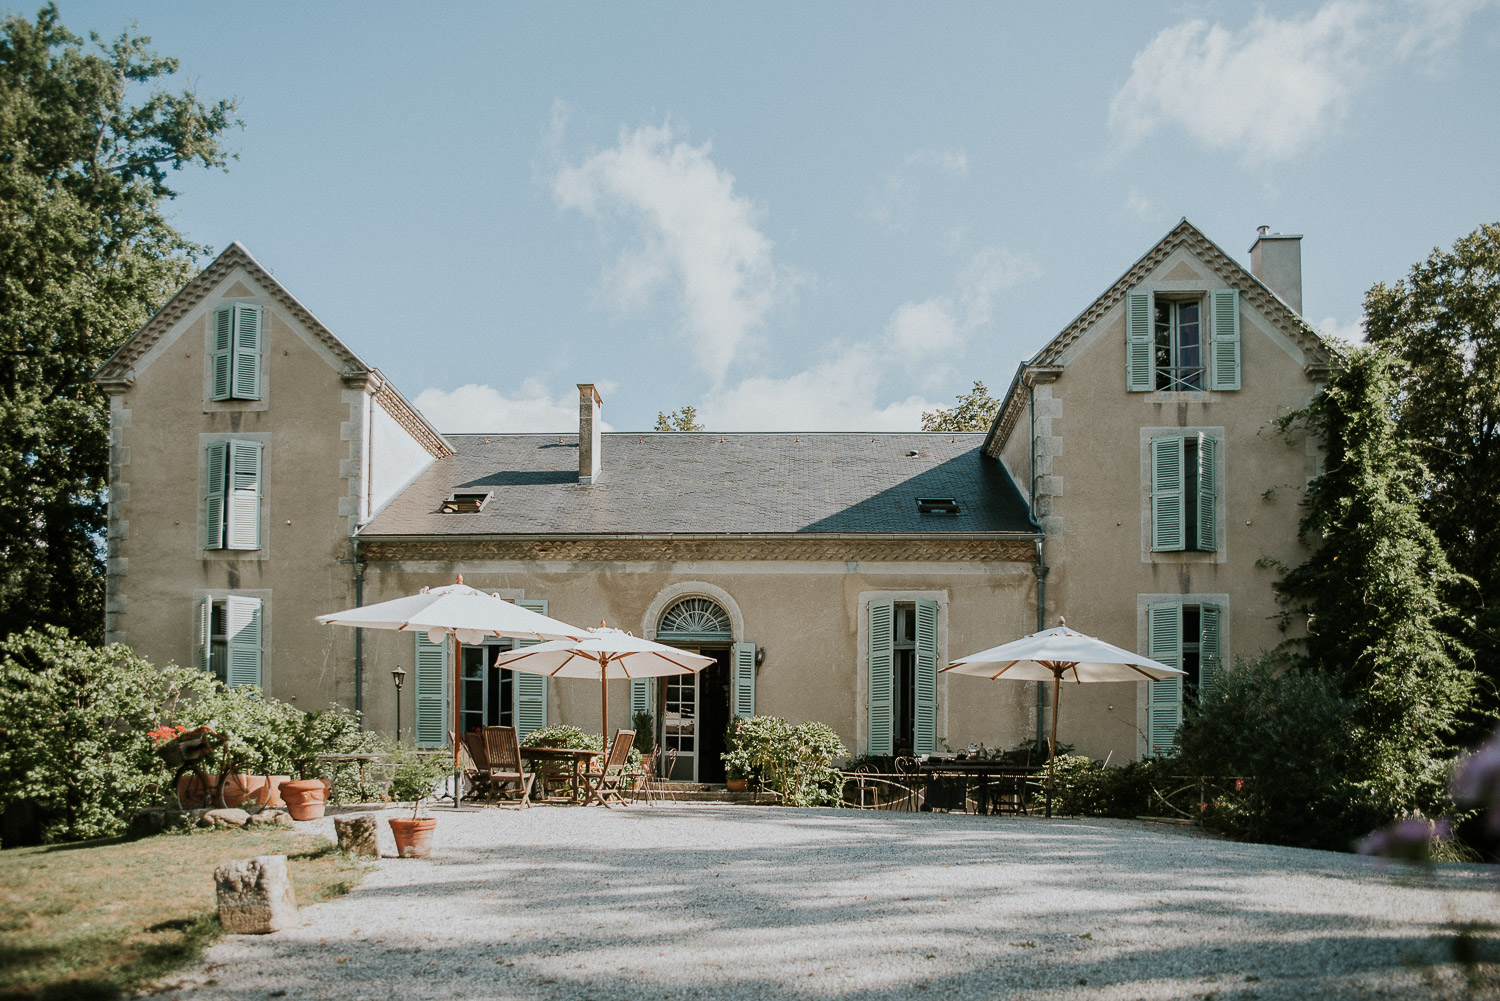 le_castelet_castres_tarn_gascony_south_west_france_family_wedding_katy_webb_photography_UK13